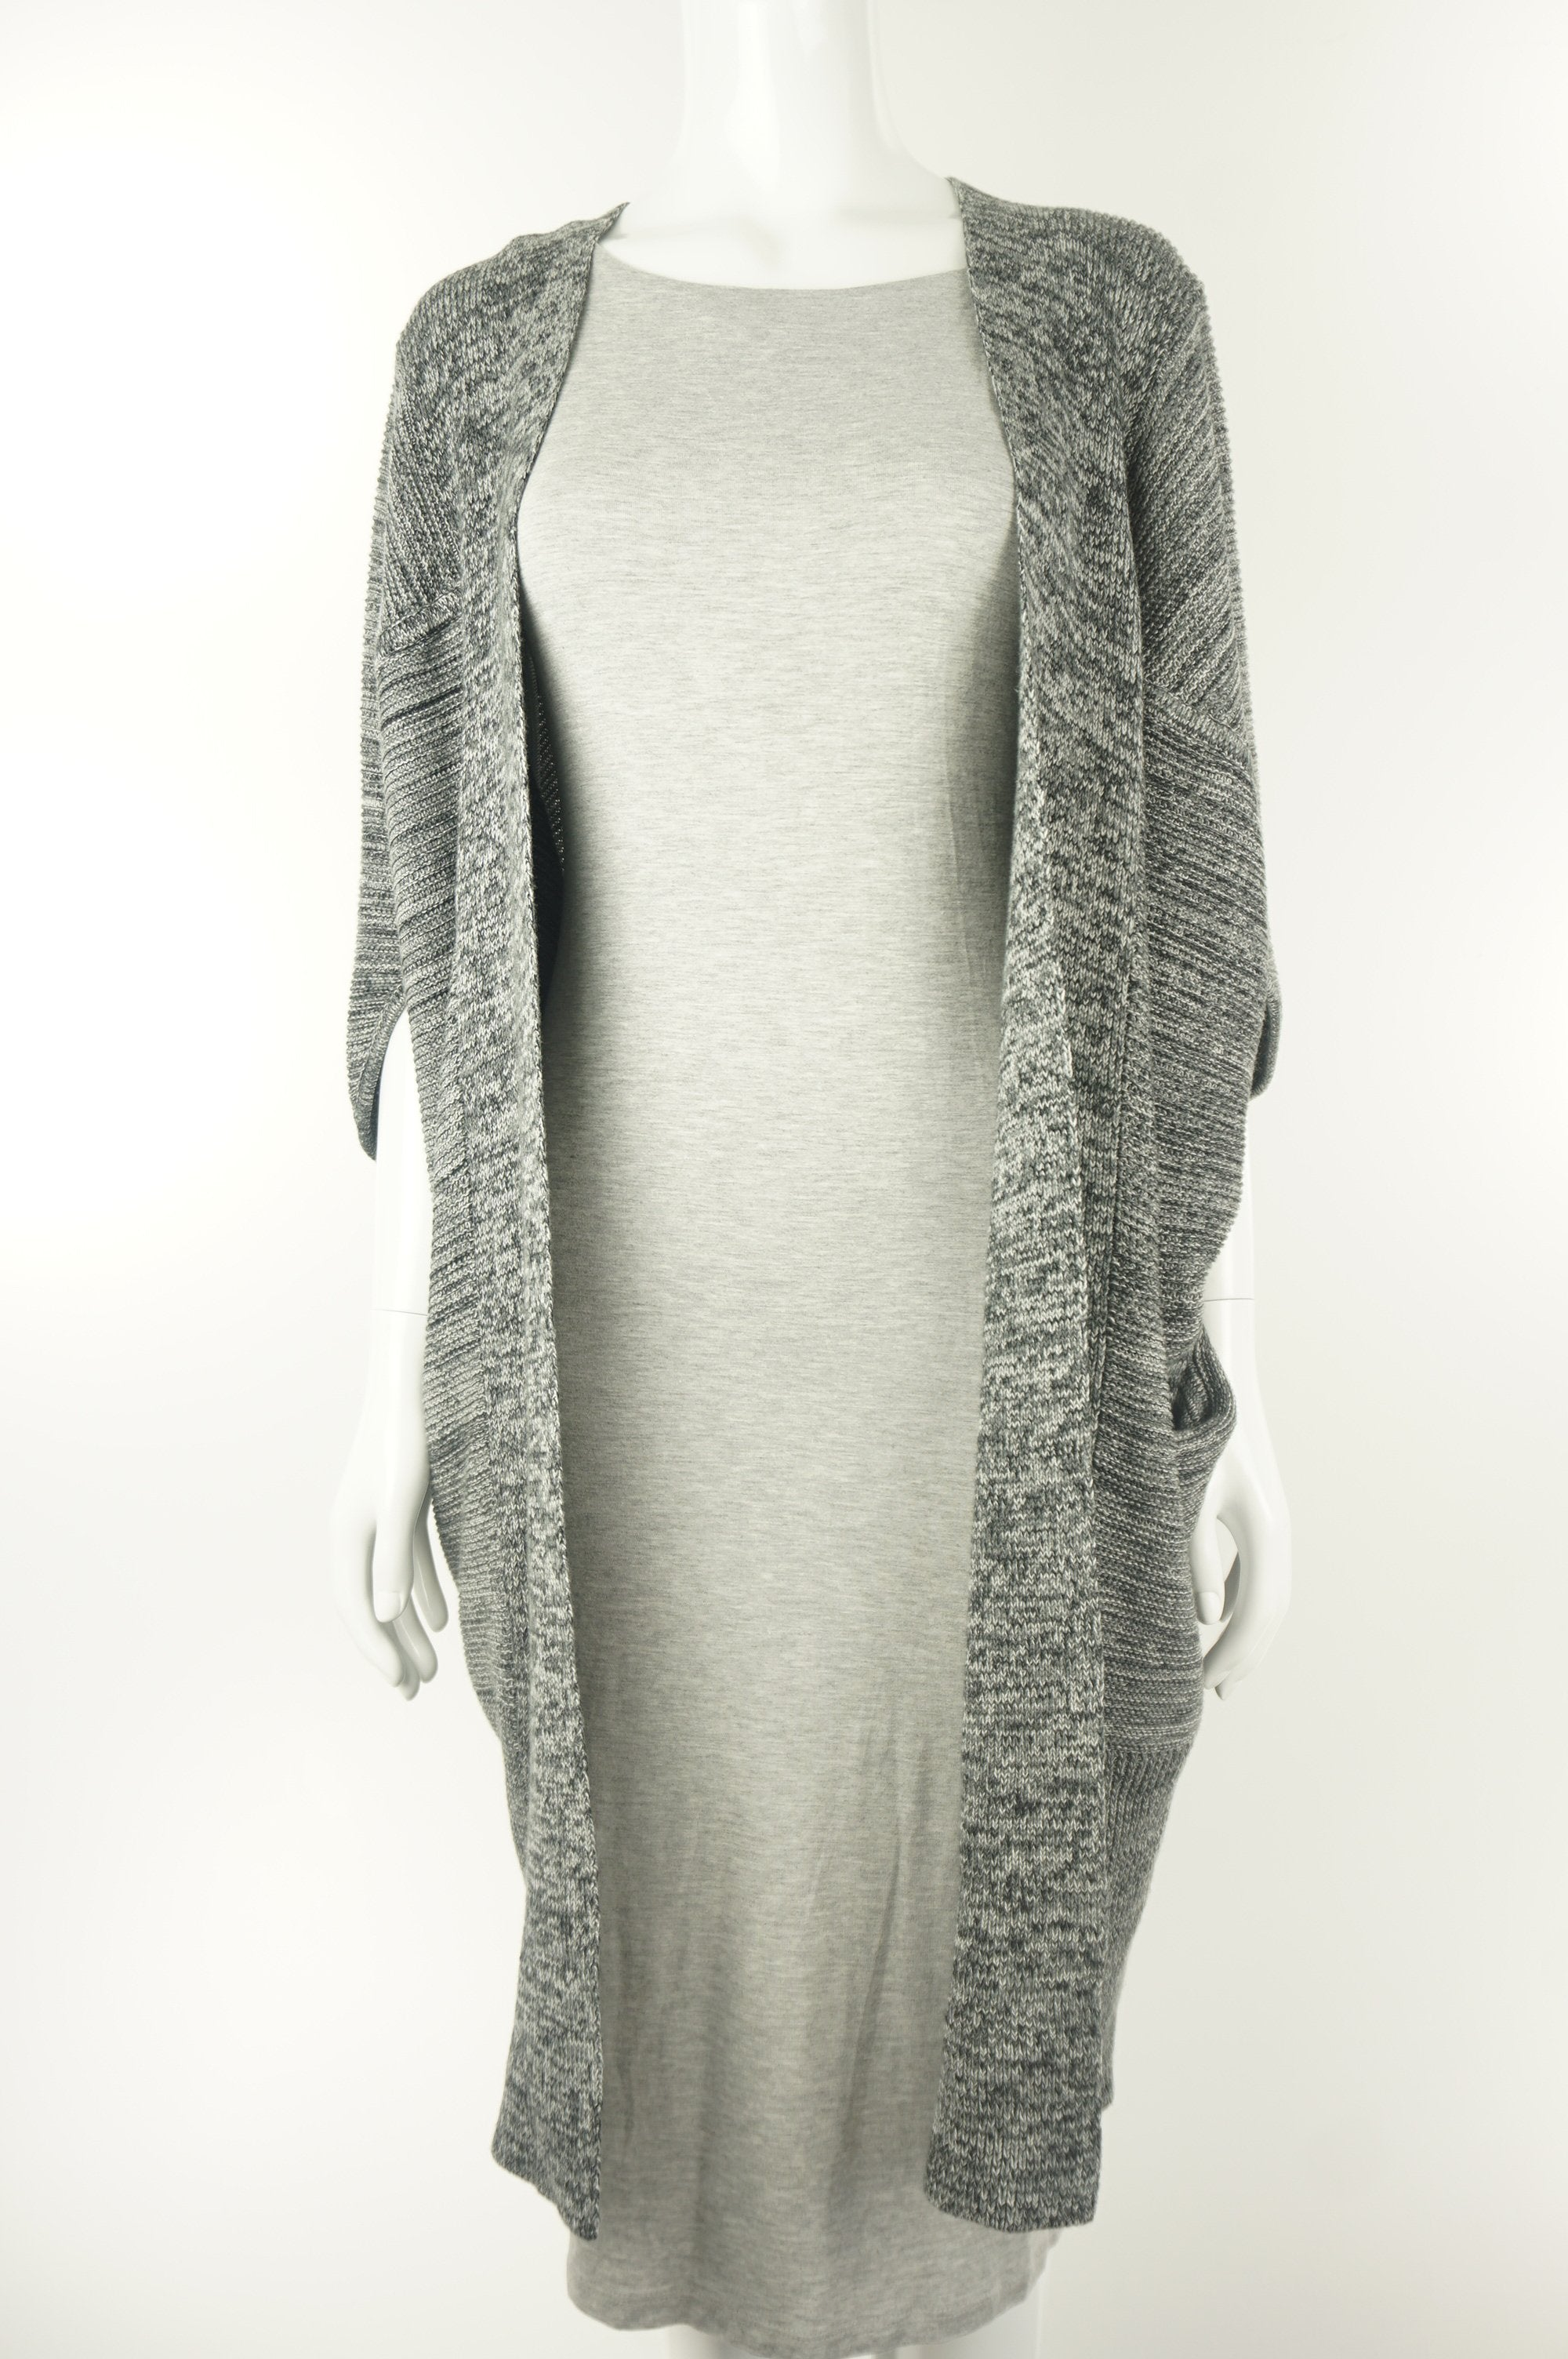 Babaton Long Cardigan, Relaxed open front cardigan made with silk and cashmere., Grey, 55% silk, 40 cotton, 5% cashmere, , women's Jackets & Coats, women's Grey Jackets & Coats, Babaton women's Jackets & Coats, Babaton women's long knitted cardigan, Aritzia women's midi sweater, women's warm long cardigan, women's warm long cardigan, Aritzia women's maxi sweater